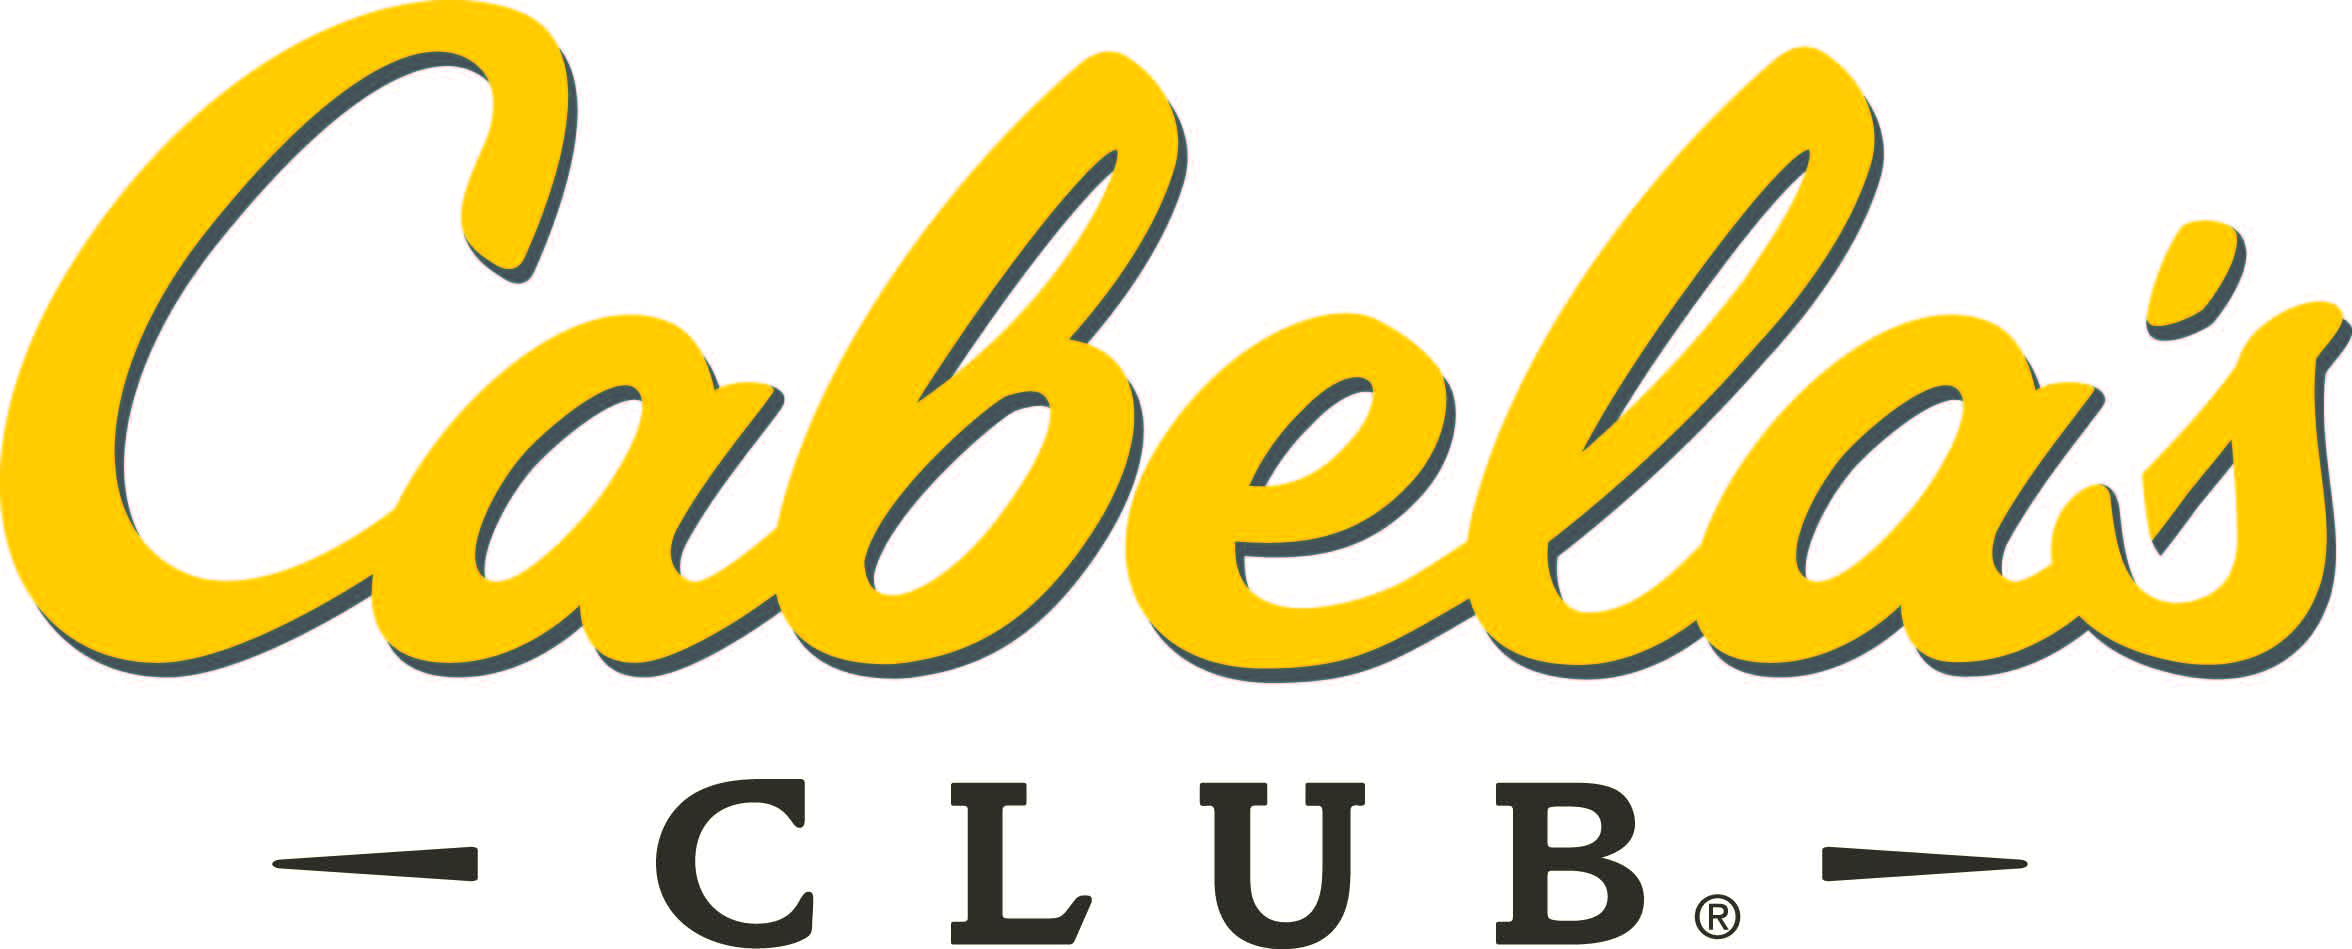 This week's CBA Employer in Residence, Cabela's, will be on campus on Tuesday, April 23rd.